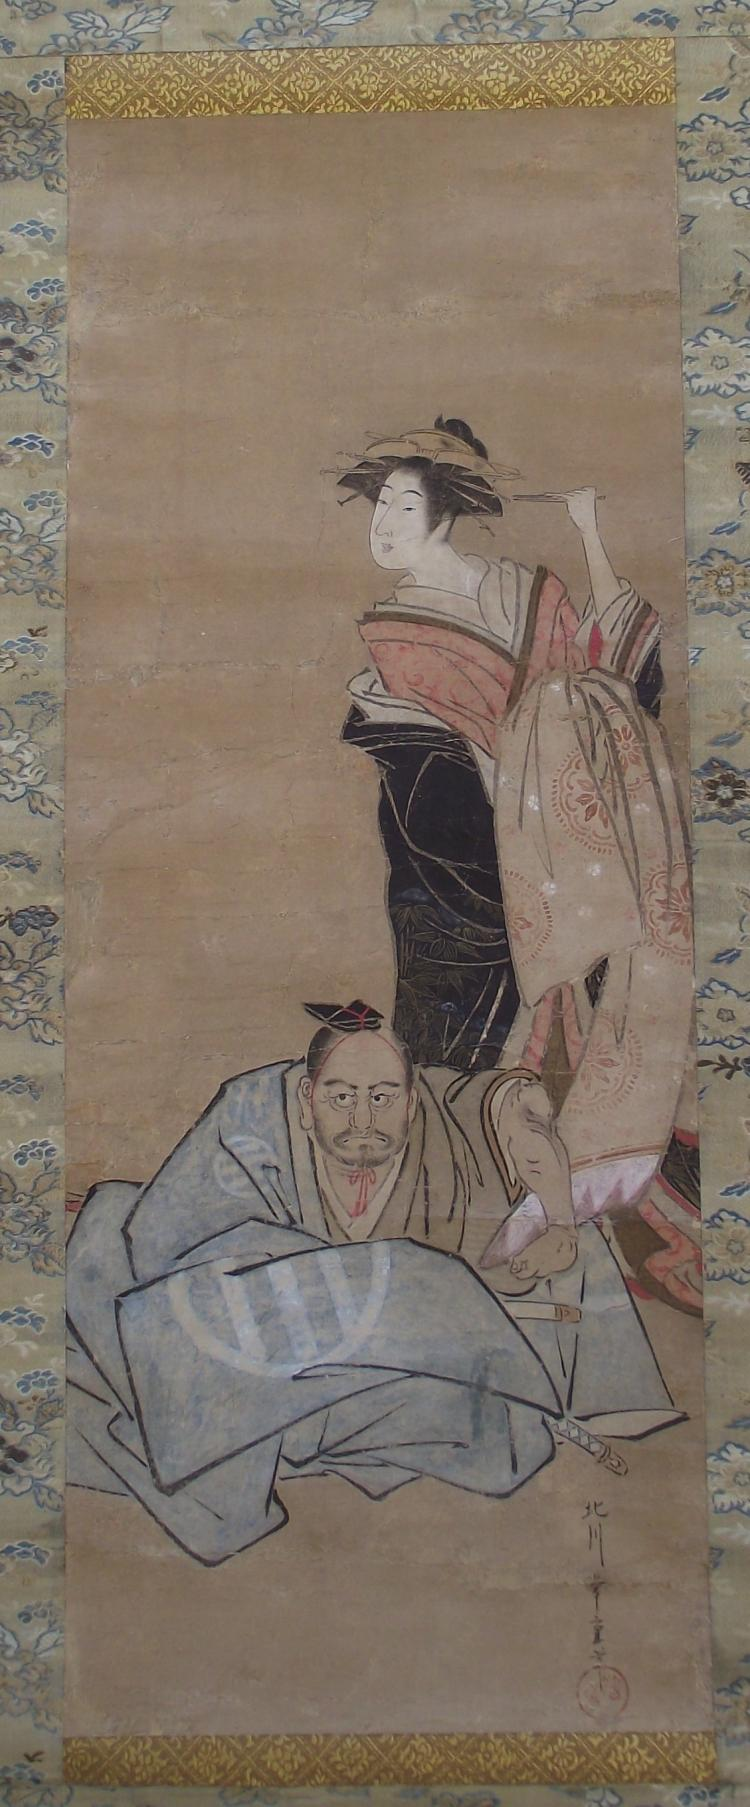 Antique Japanese Scroll Painting on paper - Utagawa School